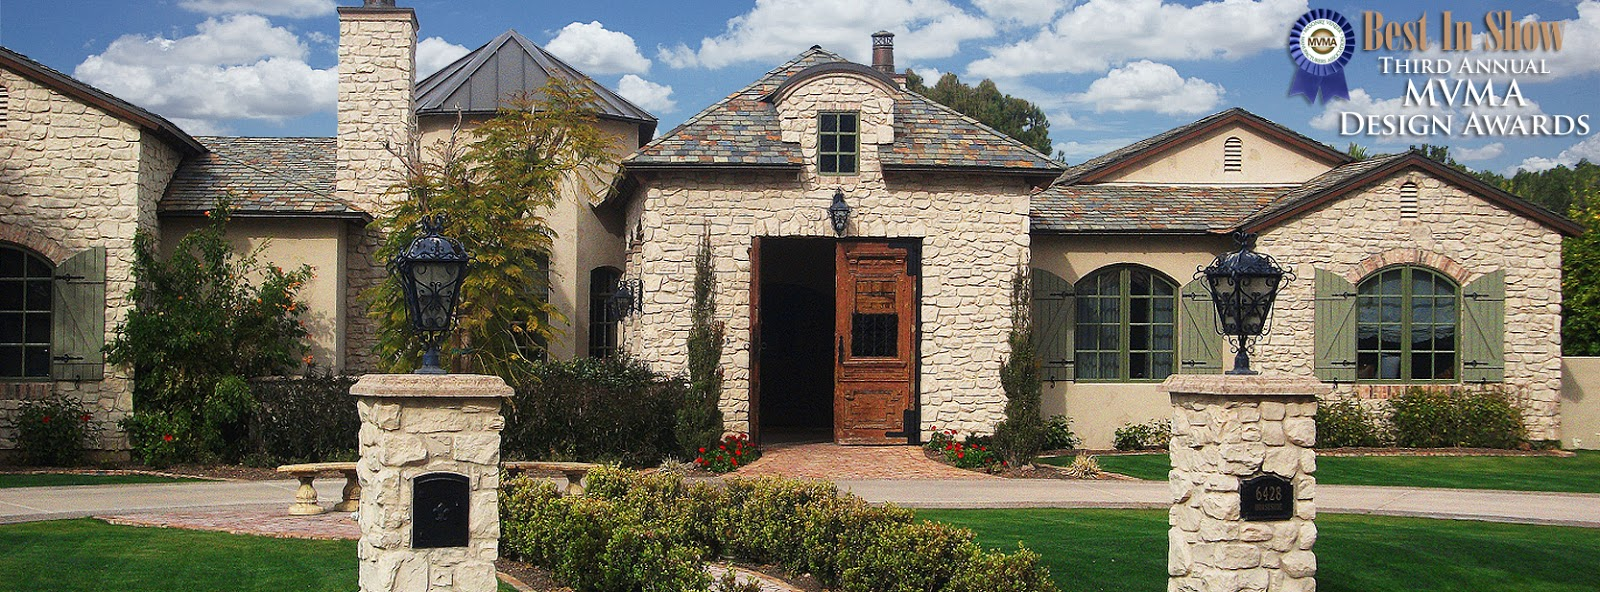 Coronado stone products manufactured stone veneer French country stone